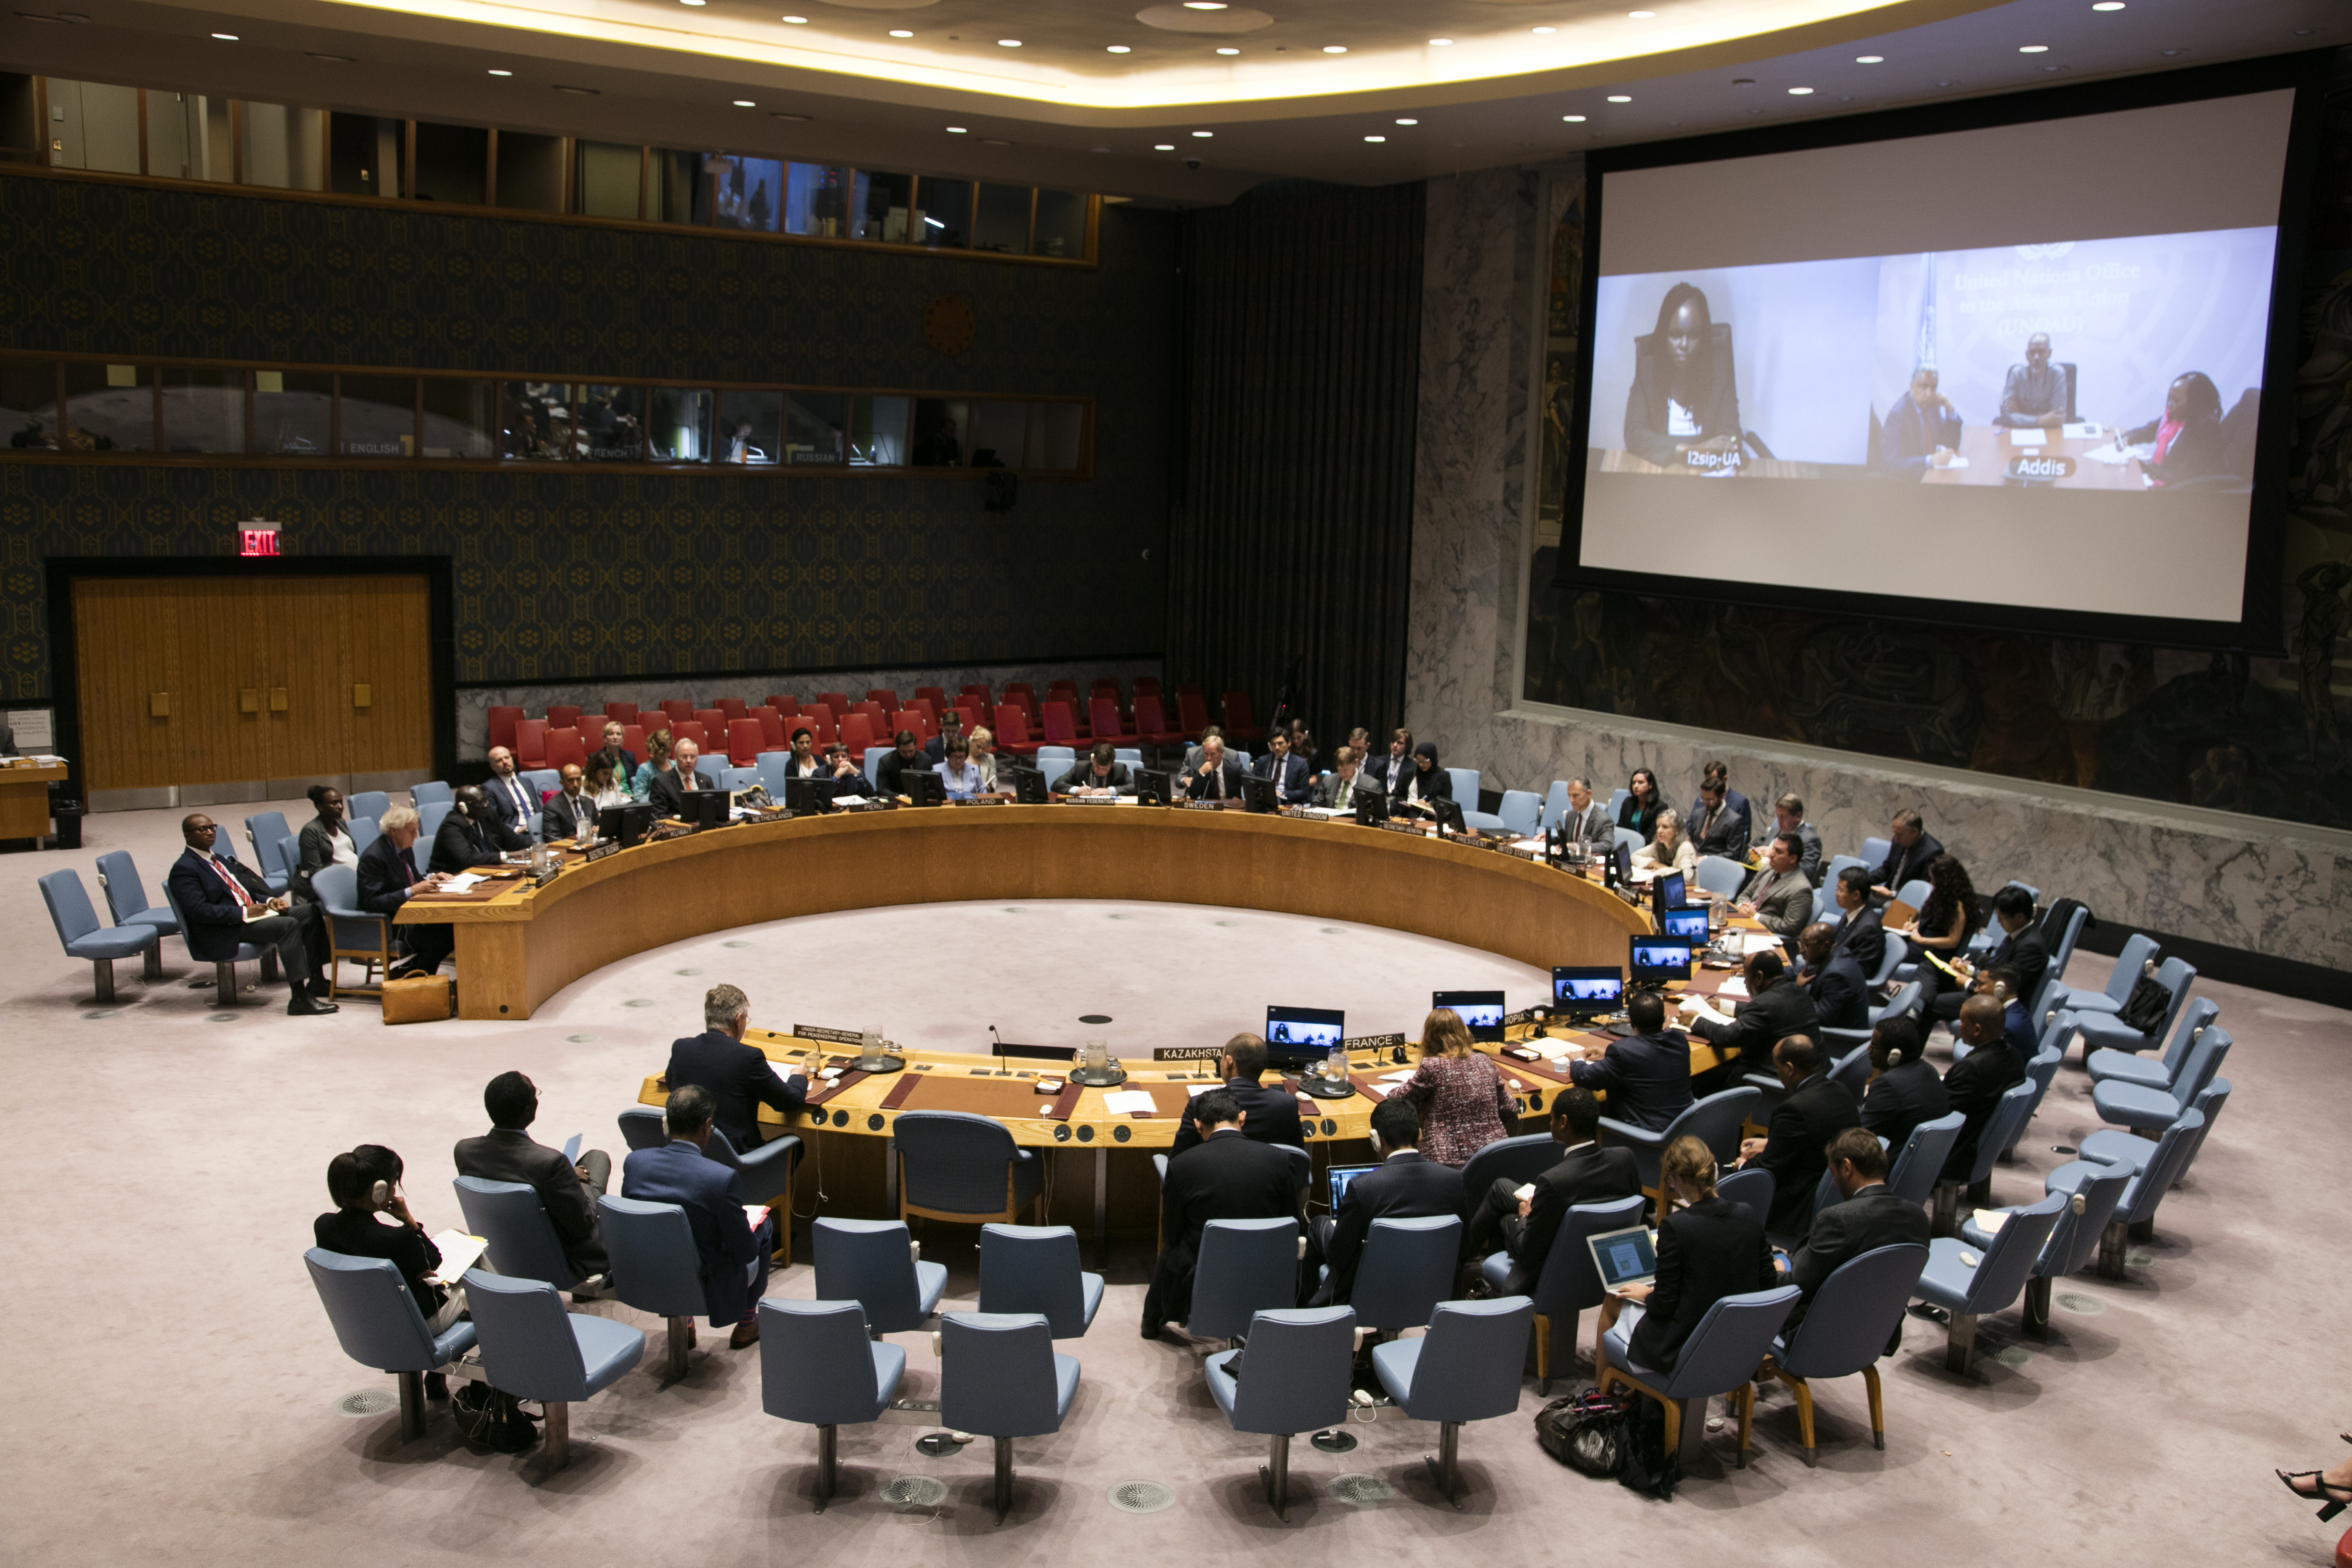 UN Security Council Briefing on South Sudan by Grace John Kenyi Geri